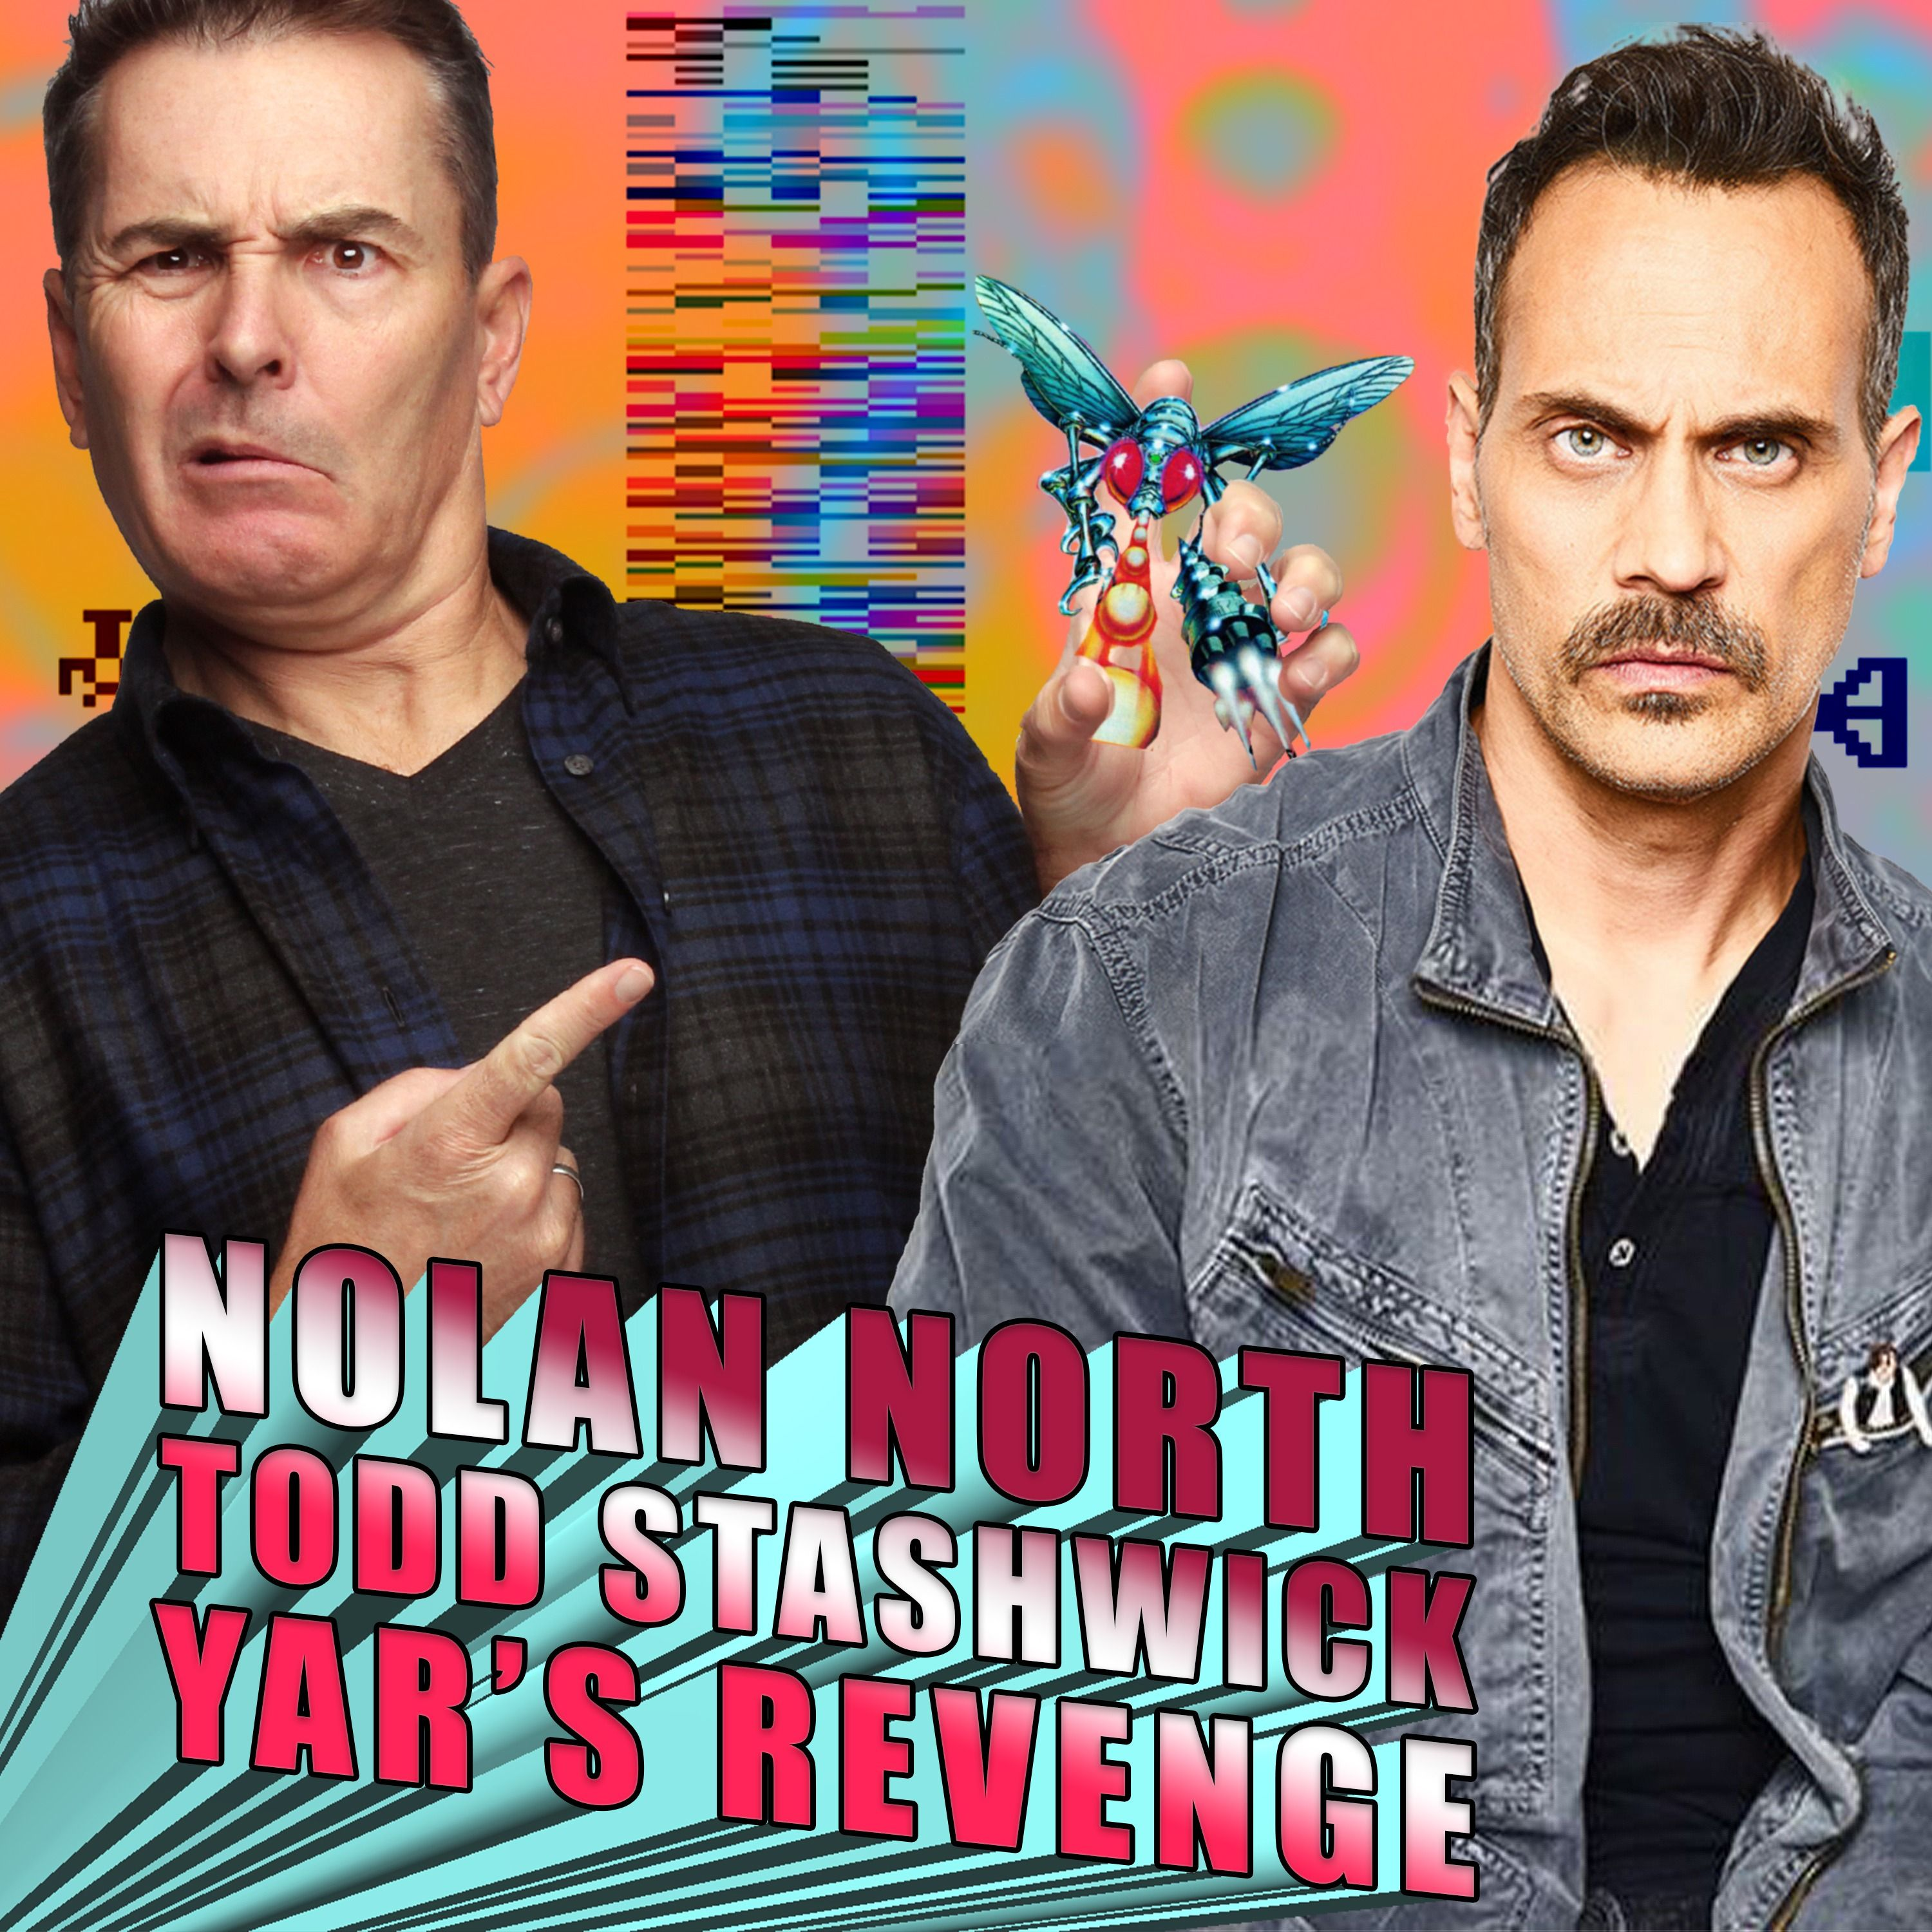 Nolan North - Todd Stashwick - Yar's Revenge | RETRO REPLAY